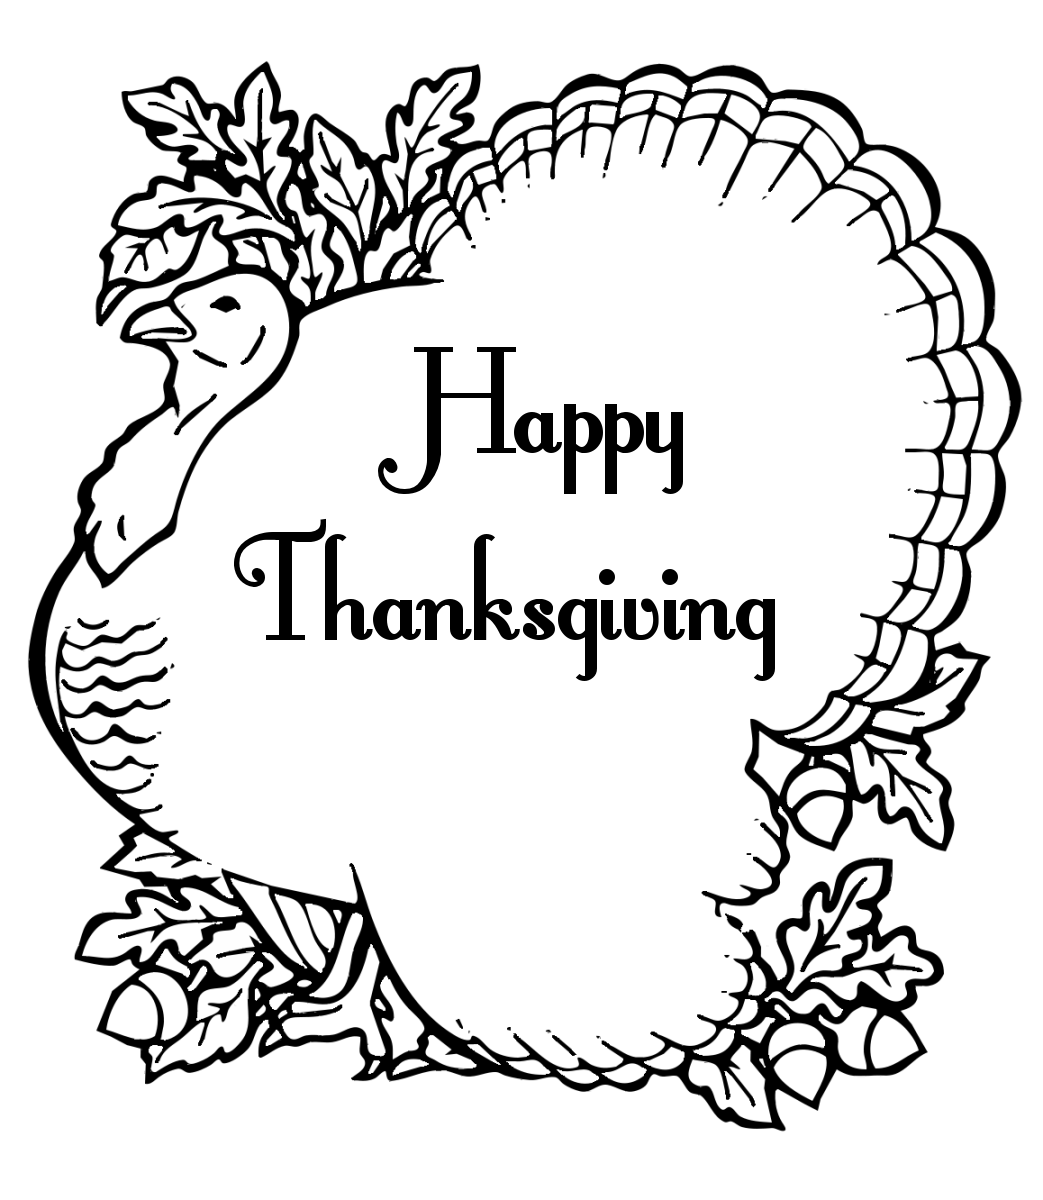 Thanksgiving clipart coloring pages ~ Thanksgiving Party Ideas | 7thriv